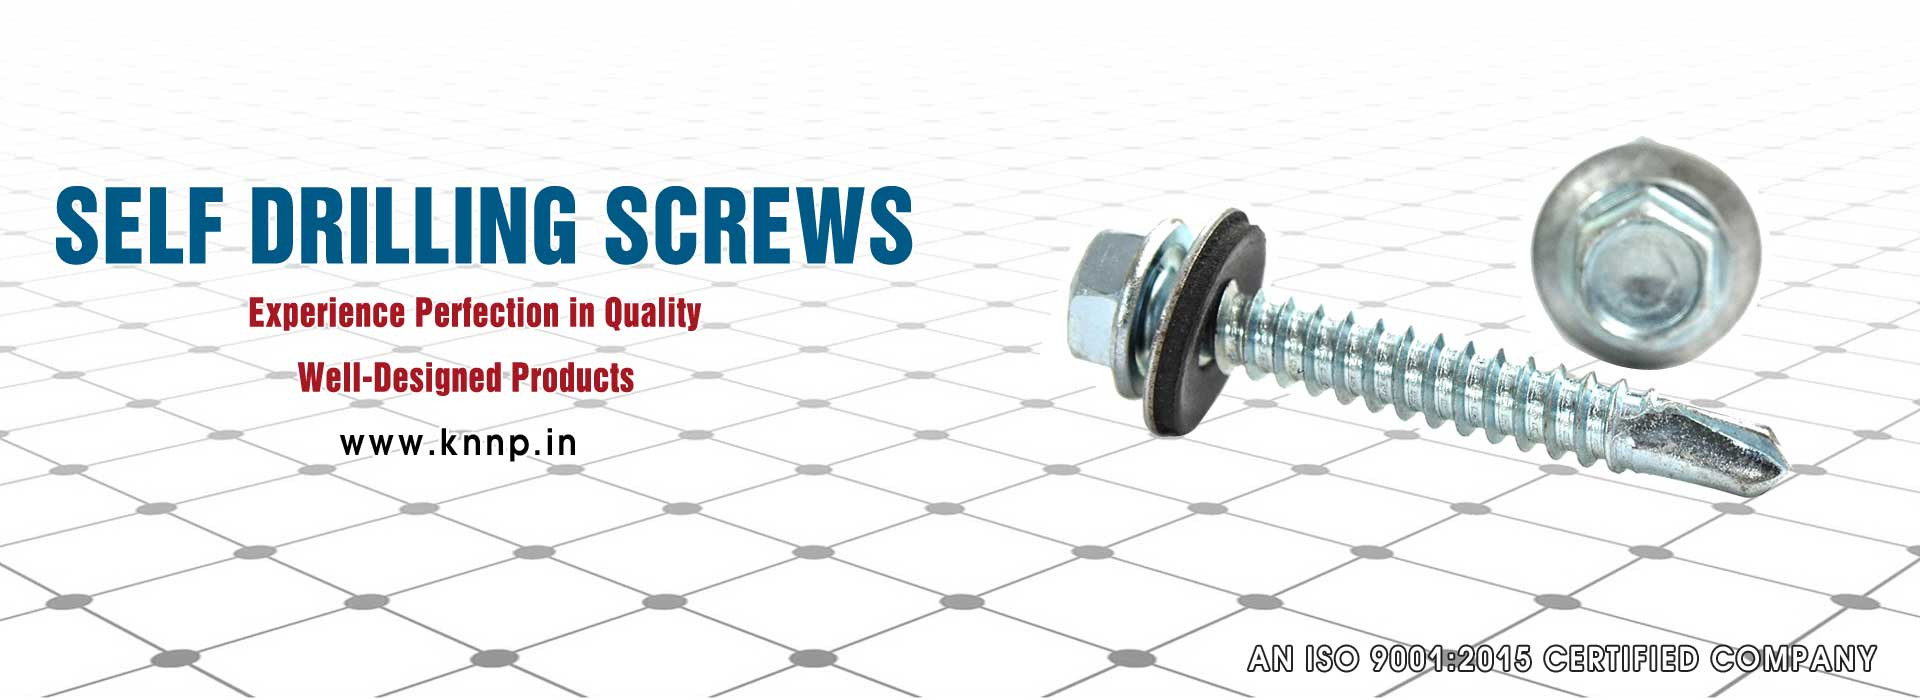 self drilling screws manufacturers suppliers in india punjab ludhiana